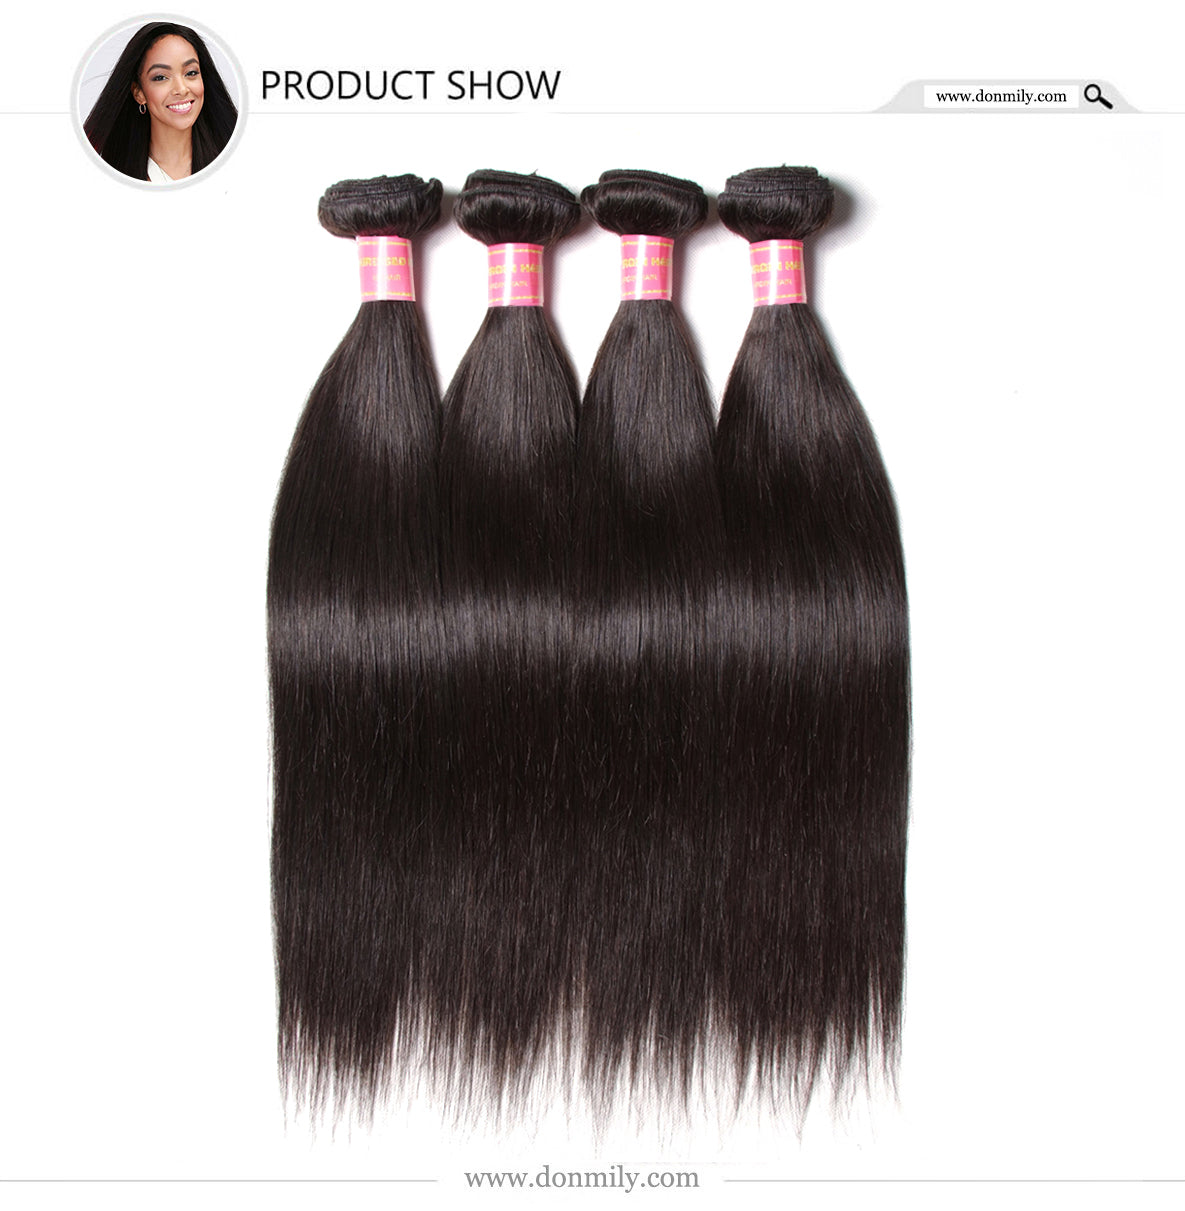 Straight perm bleached hair - It Is 100 Unprocessed Virgin Human Hair Can Be Dyed Perm Bleach Iron Available Style Are Body Wave Loose Wave Straight Kinky Curly Deep Curly Wave Afro